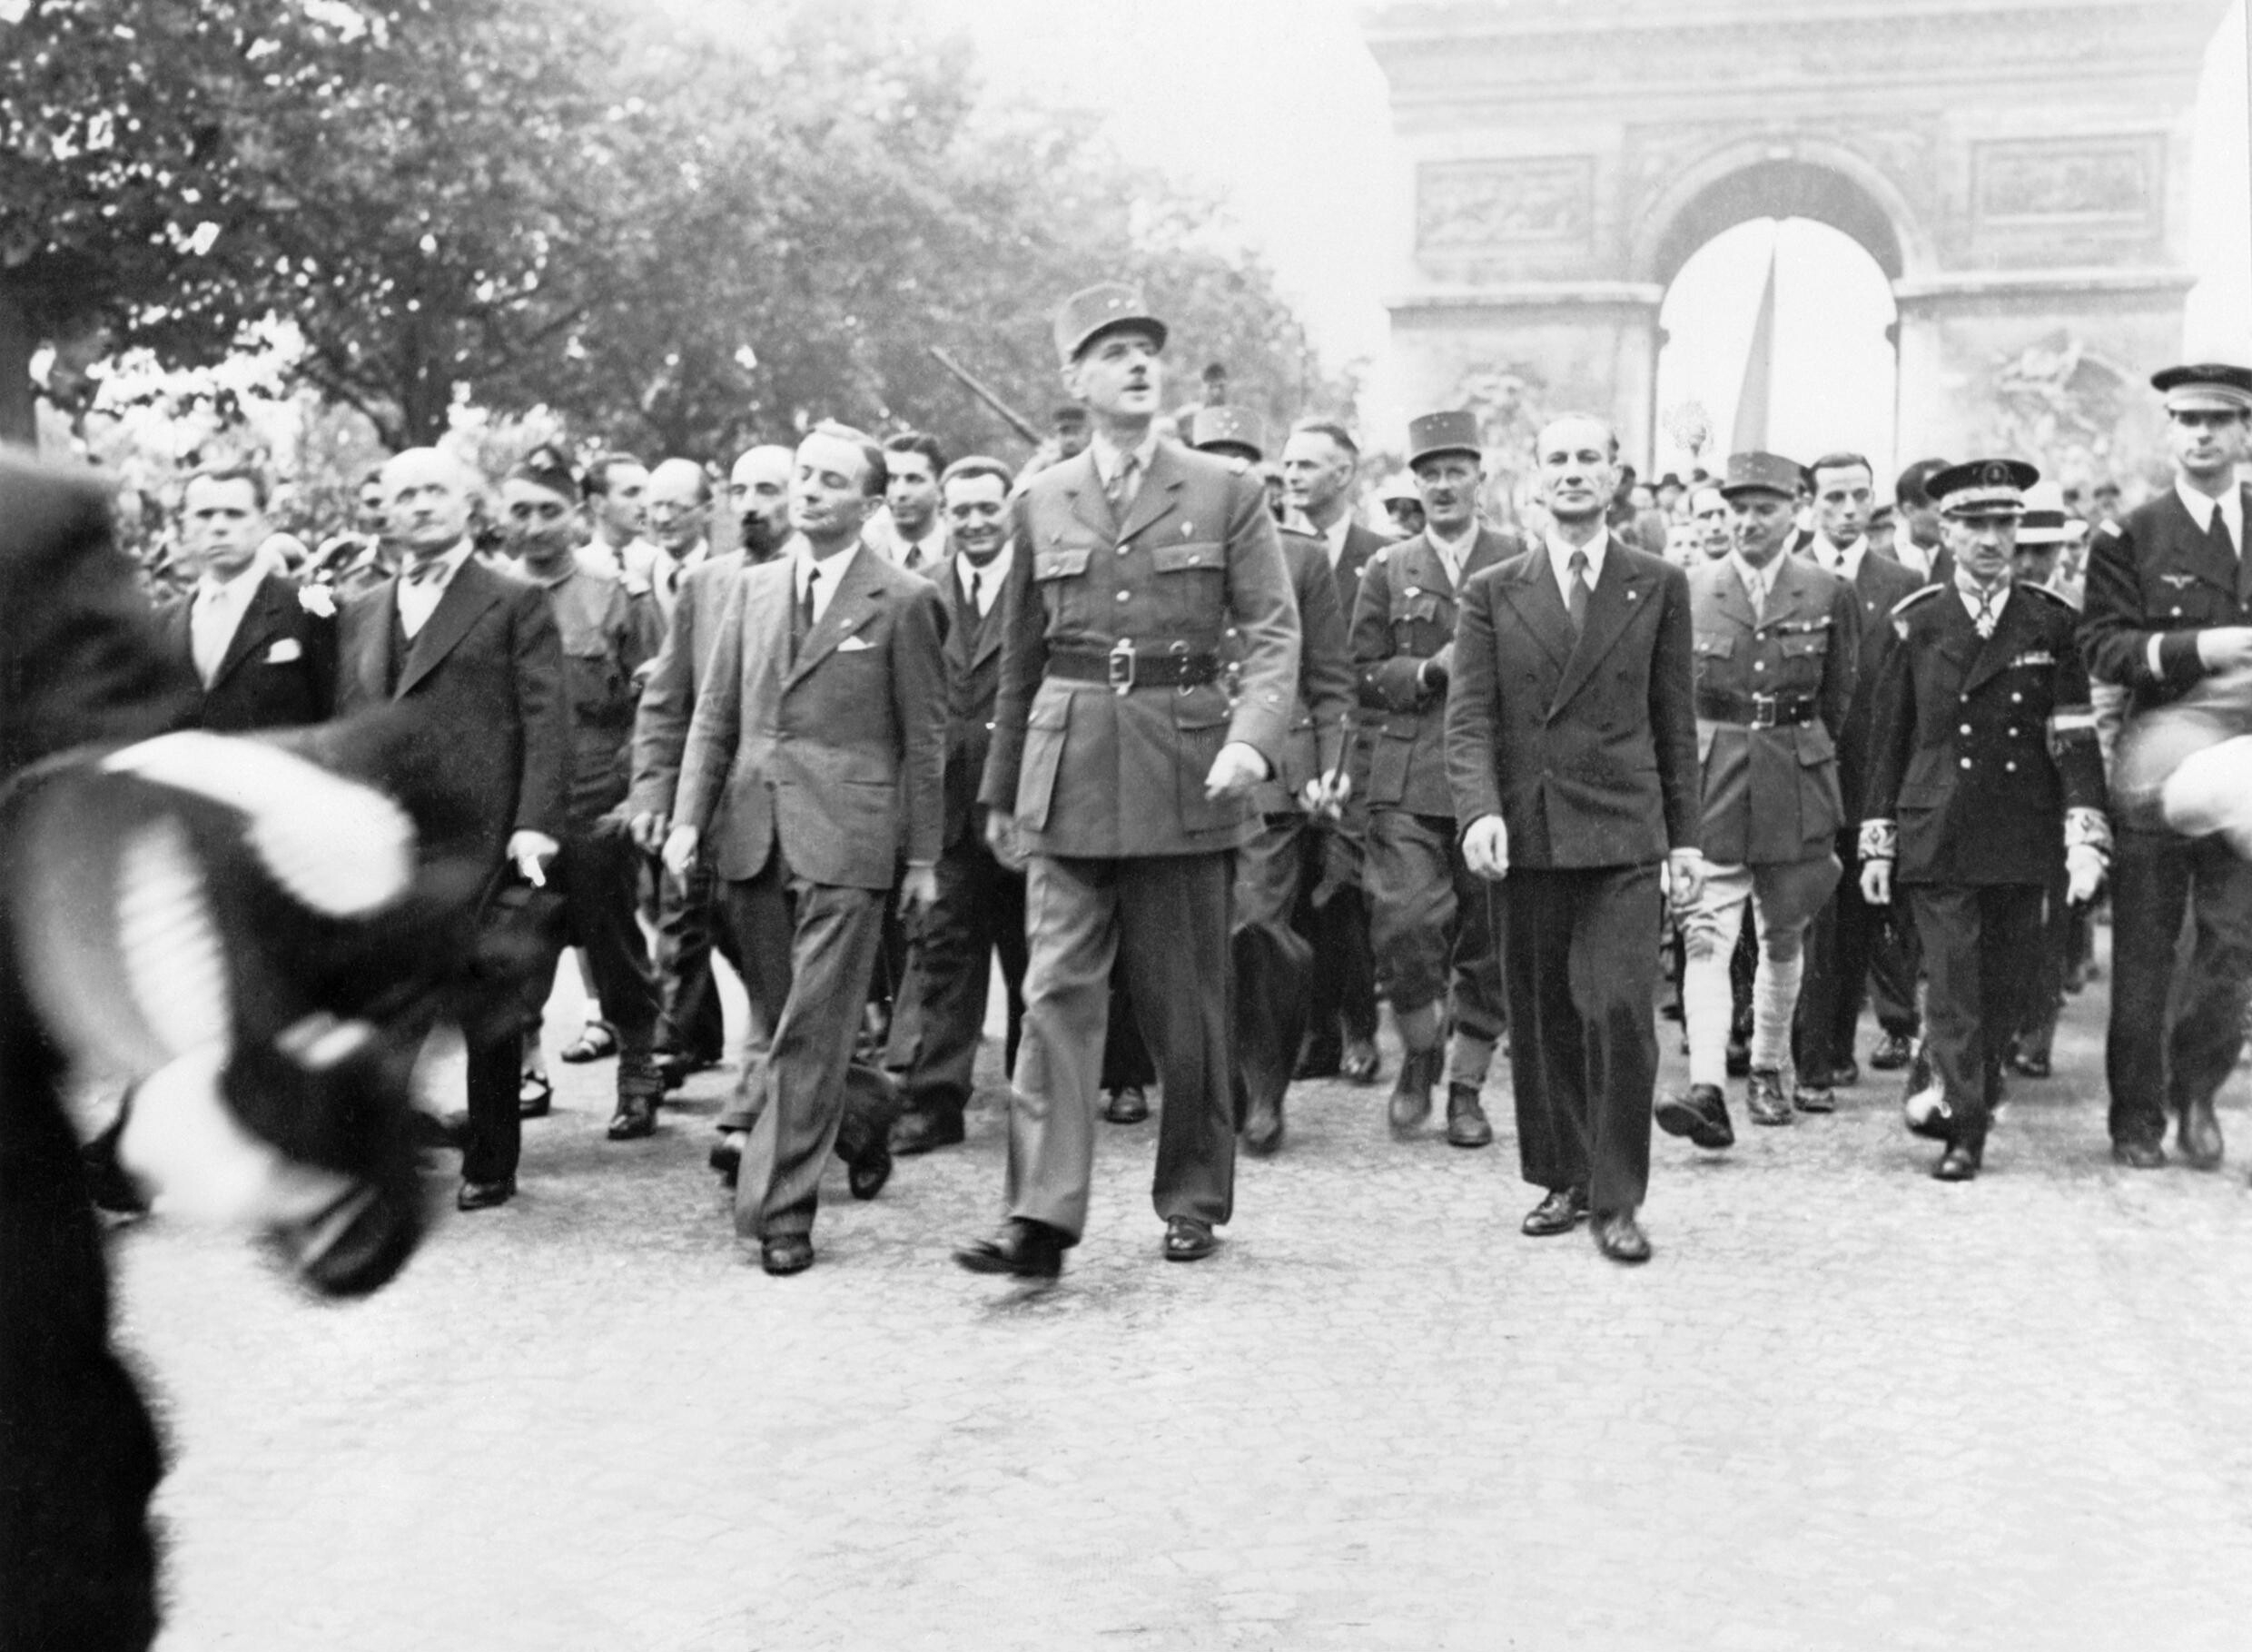 The Liberation of Paris, 25 - 26 August 1944. General Charles de Gaulle and his entourage set off from the Arc de Triomphe down the Champs Elysees to Notre Dame for a service of thanksgiving following the city's liberation in August 1944. London: Imperial War Museum. Public domain.